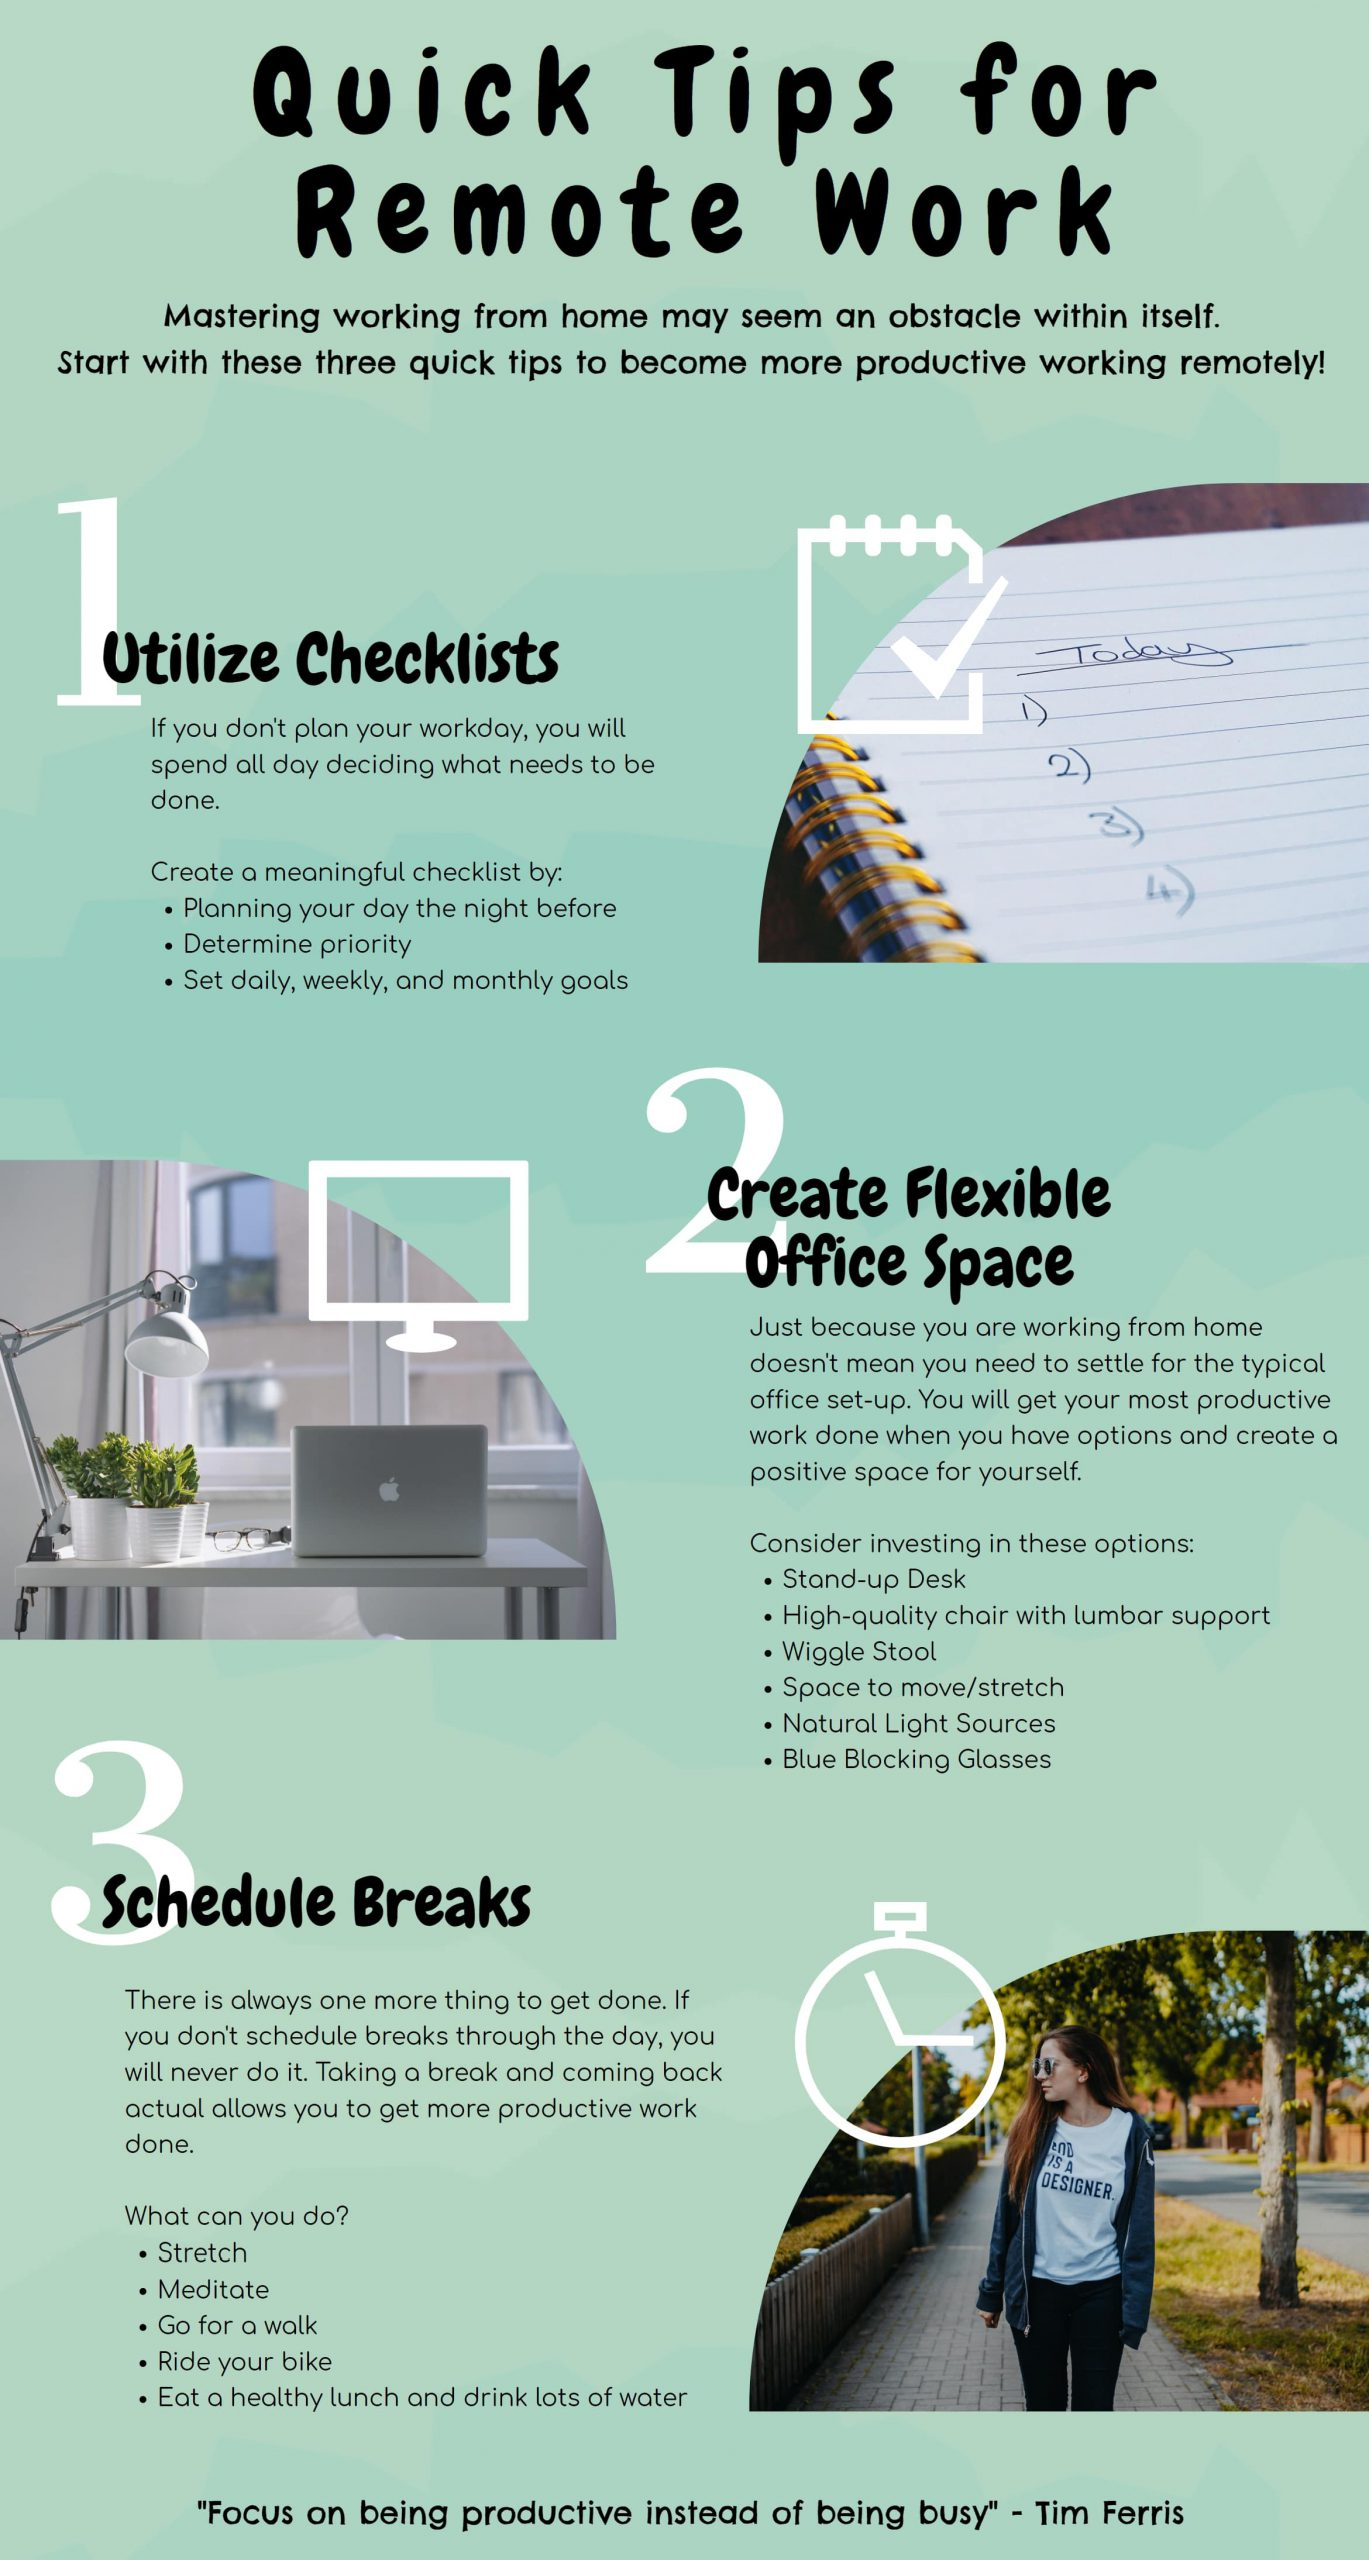 Quick Tips for Remote Work: Utilize Checklists. Create Flexible Office Space. Schedule Breaks.